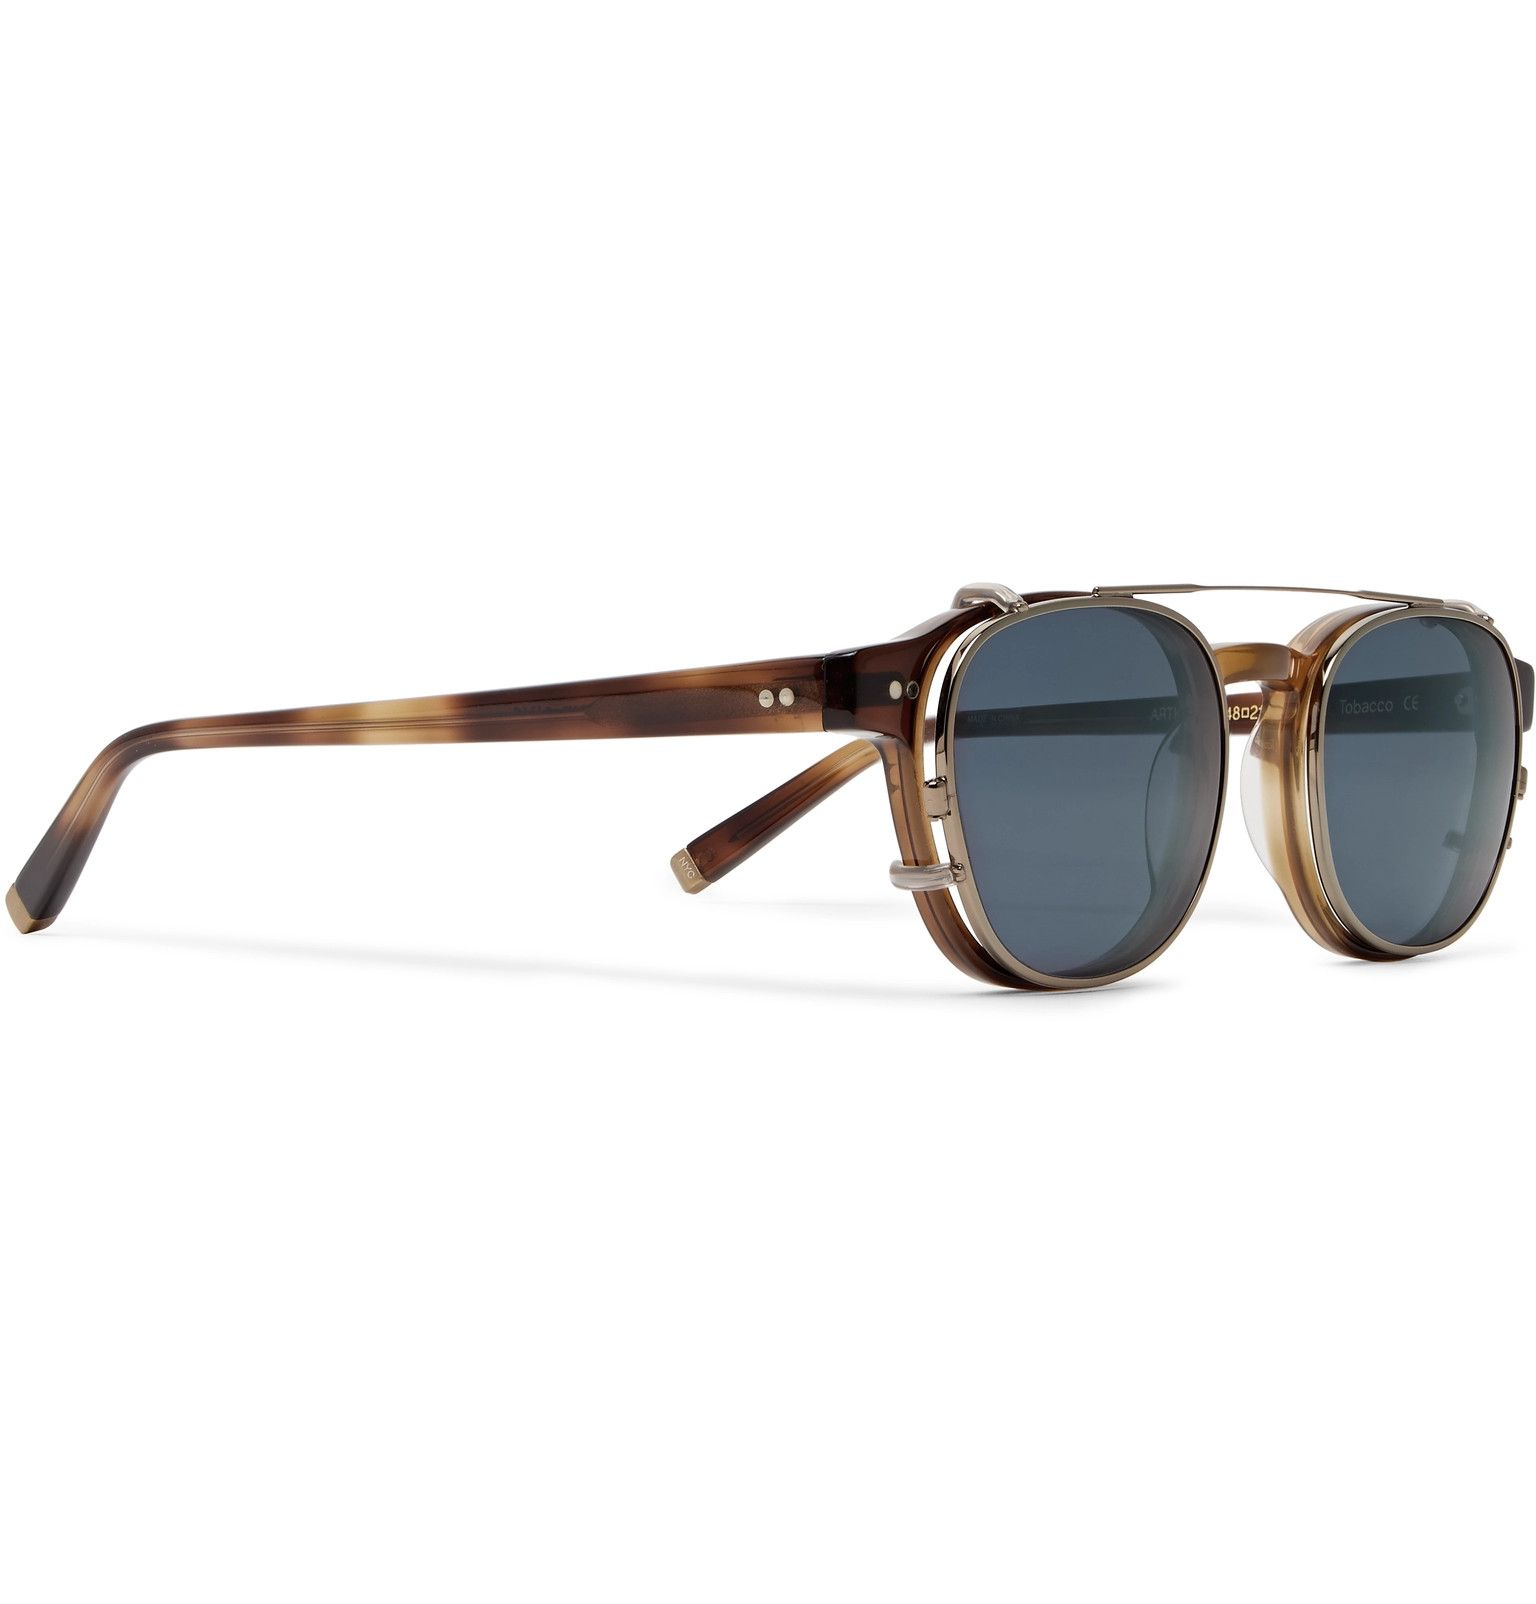 5cf37a7a26 Moscot - Arthur Round-Frame Tortoiseshell Acetate Optical Glasses with  Clip-On UV Lenses